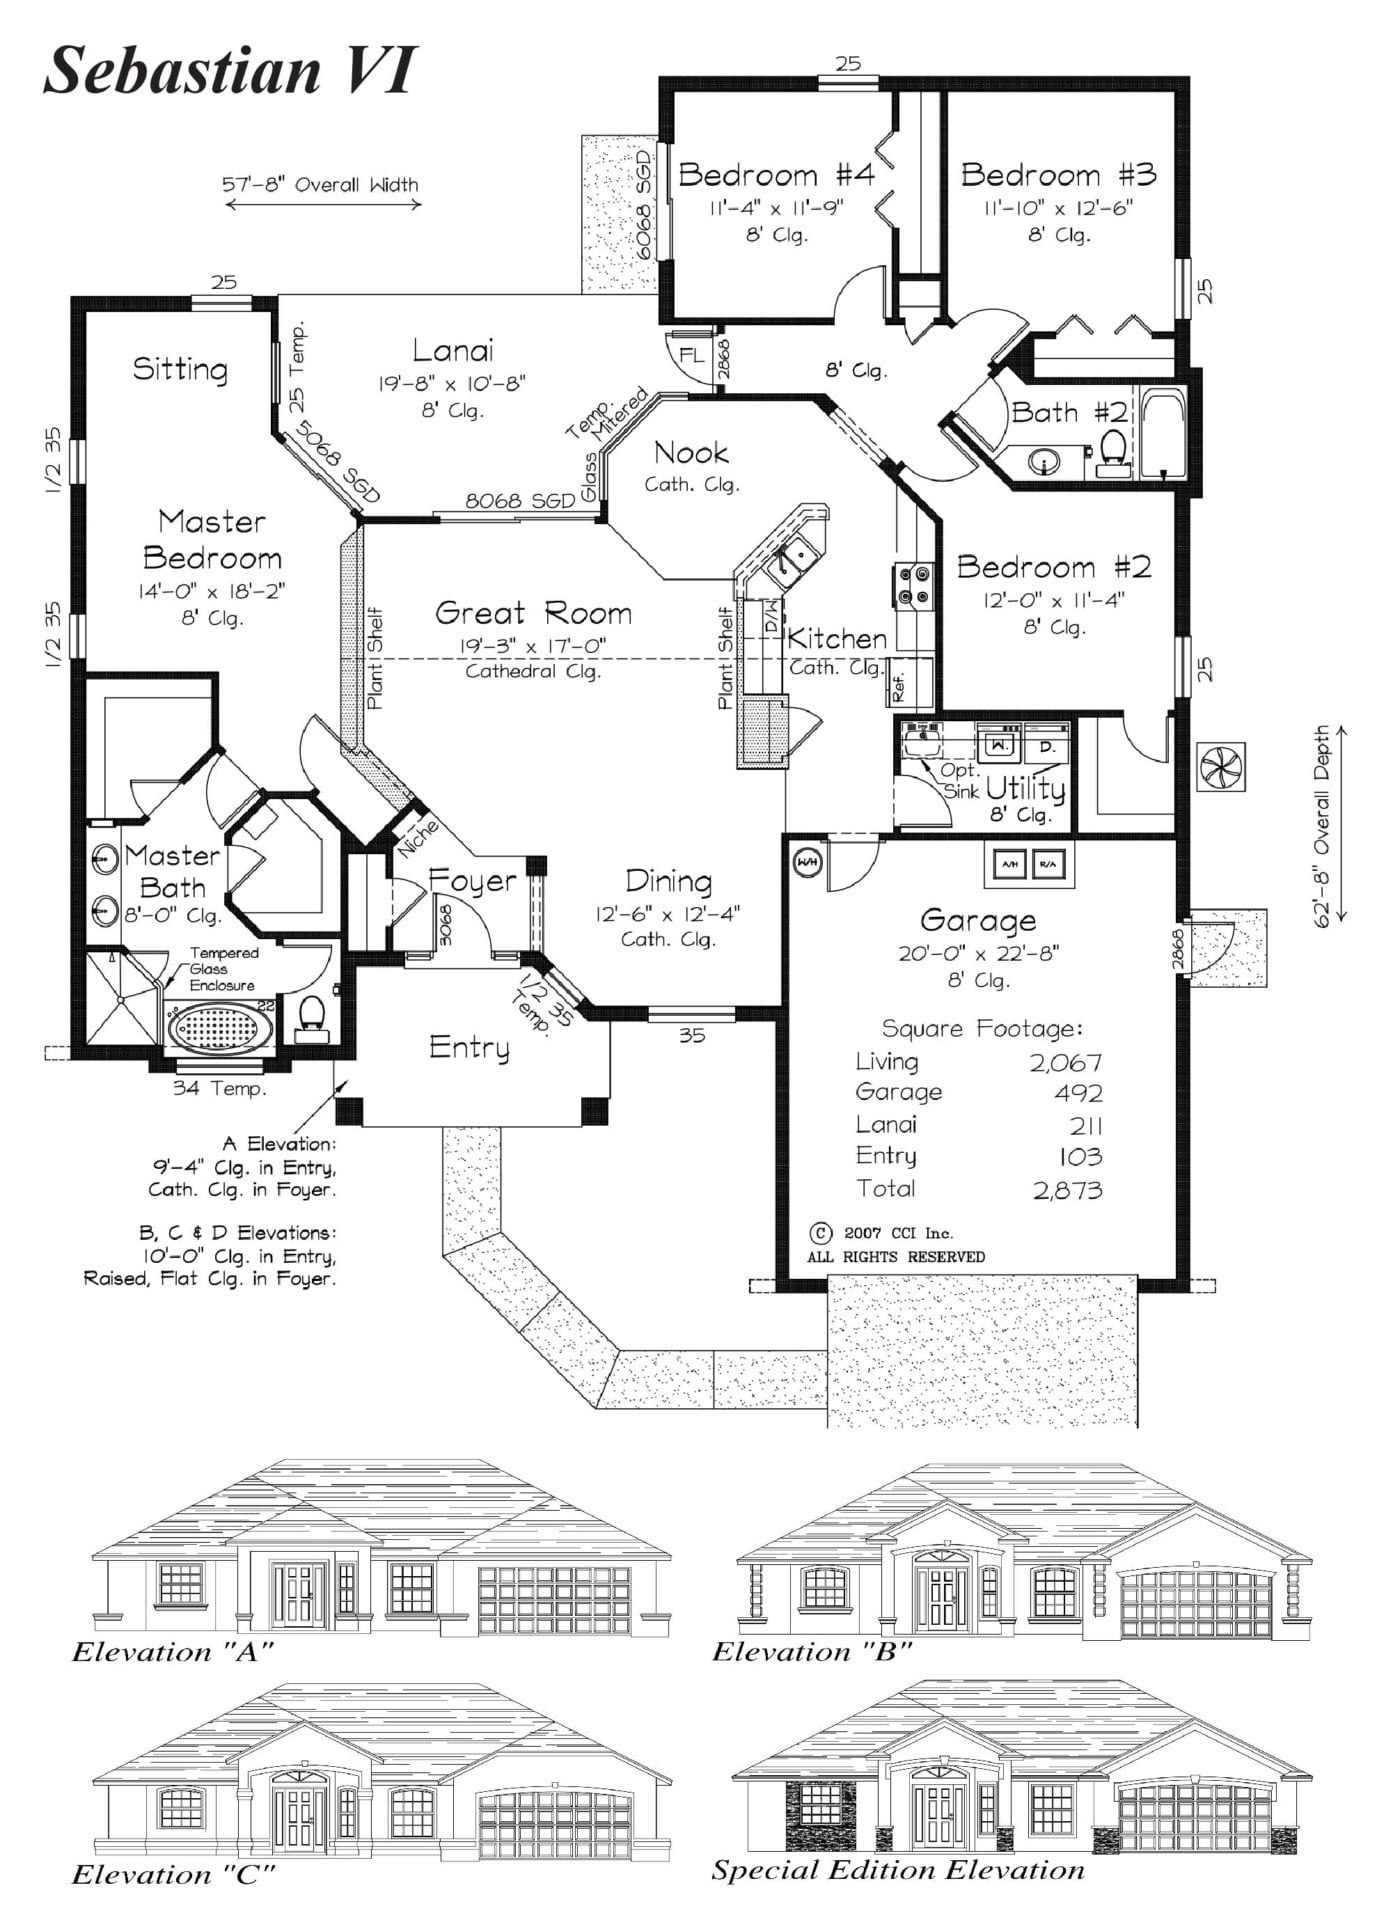 Sebastion VI - Floor Plan - Curington Homes - Ocala Florida Contractor